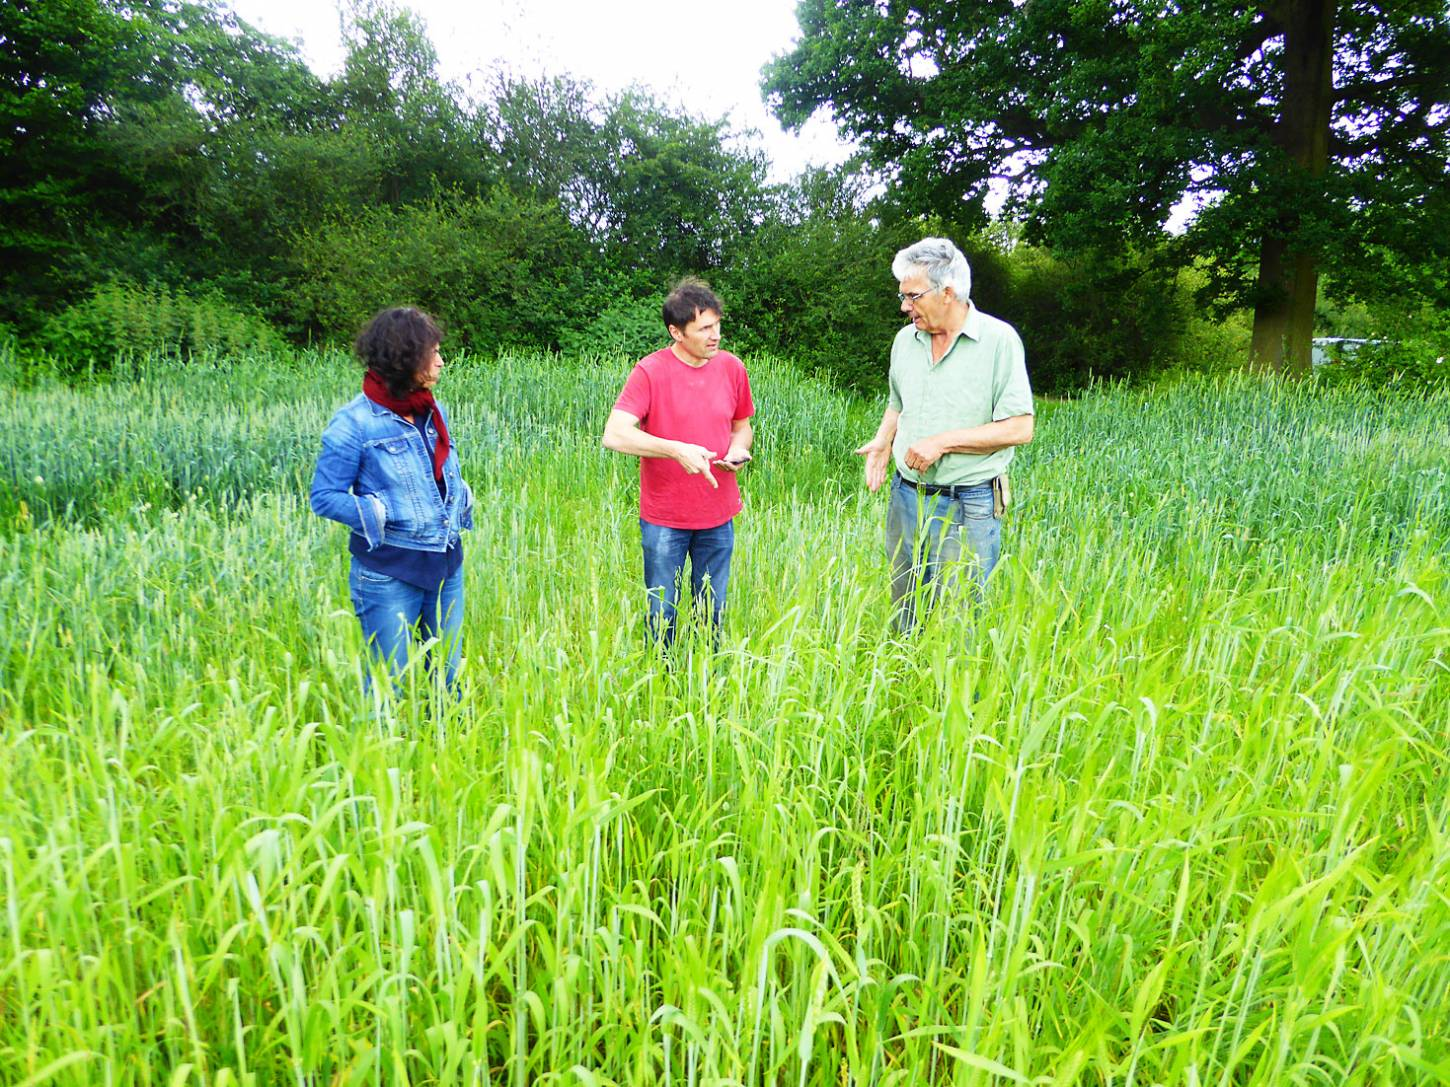 Lodge Farm review with Valerie and Samuel Poilane, mill makers from Brittany and farmer Mike Pinard, <a href='http://brockwell-bake.org.uk/wheat/hub.php?ID=38' target='_blank'>Red Chidham</a> behind, <a href='http://brockwell-bake.org.uk/wheat/hub.php?ID=51' target='_blank'>Blue Cone Rivet</a> in front - 1:38pm&nbsp;5<sup>th</sup>&nbsp;Jun.&nbsp;'17  <a href='http://maps.google.com/?t=h&q=51.207906,-0.086983&z=18&output=embed' target=_blank><img src='http://www.brockwell-bake.org.uk/img/marker.png' style='border:none;vertical-align:top' height=16px></a>